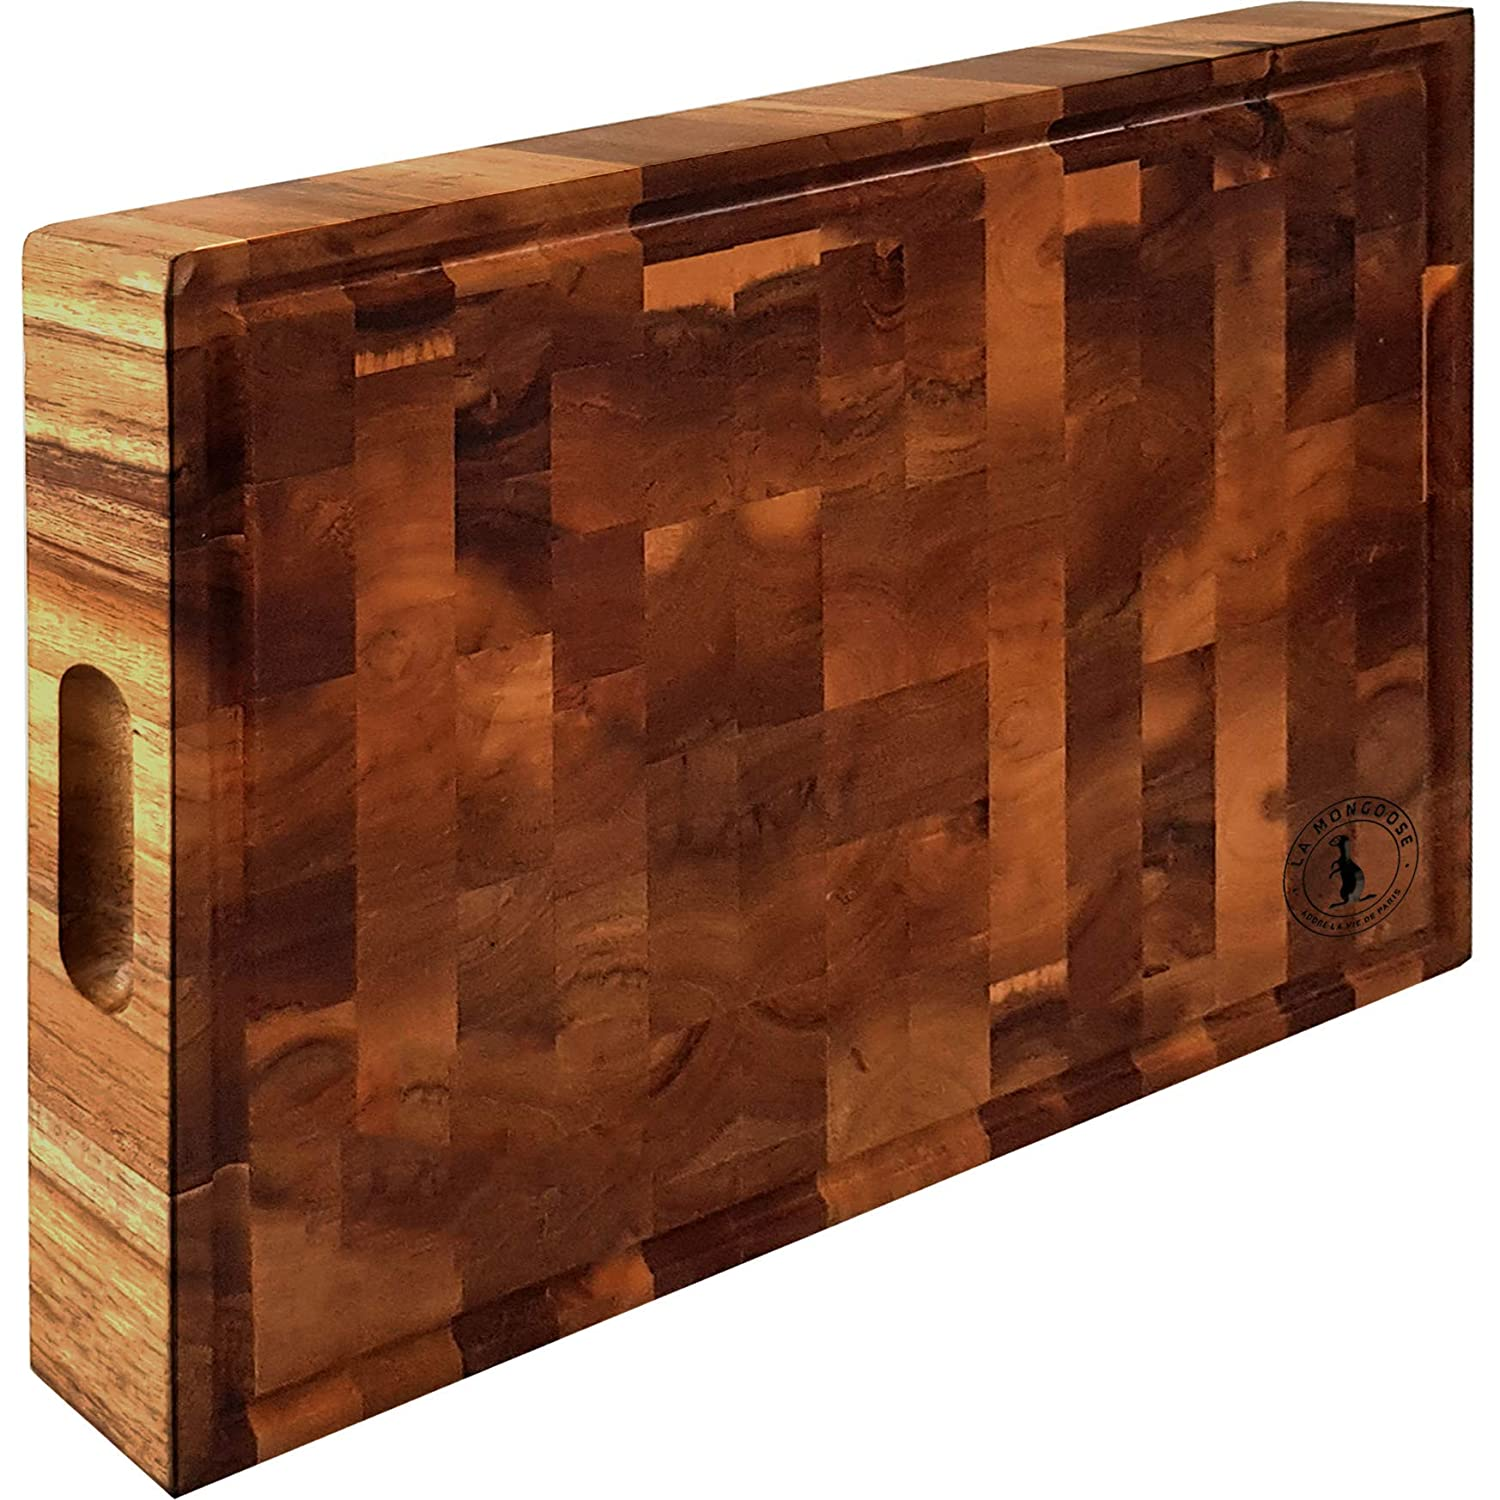 Extra Large Thick Premium Acacia Wood Cutting Board 17 x 13 x 2 inch Juice Groove Hand Grips Reversible Solid Sturdy End Grain Butchers Block Chopping Serving Tray Platter Perfect Gift